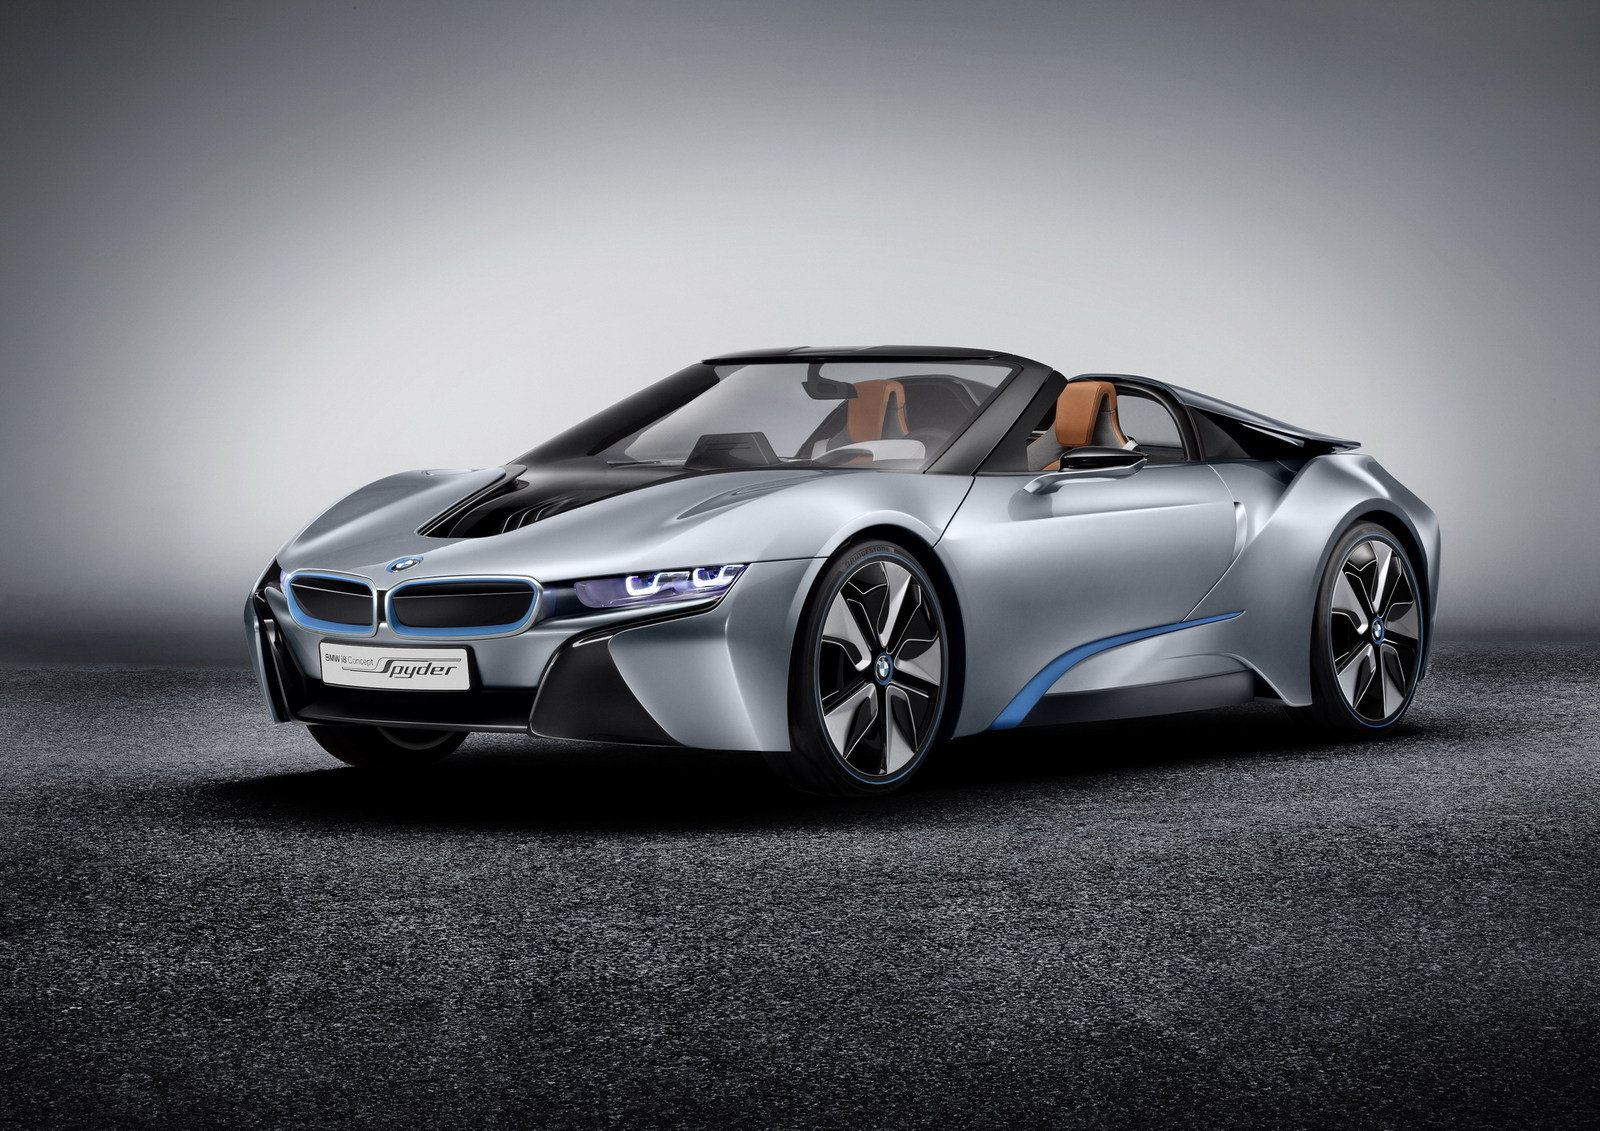 2012 Bmw I8 Concept Spyder Pictures Photos Wallpapers And Videos Top Speed 2012 bmw i8 i3 concept cars 6